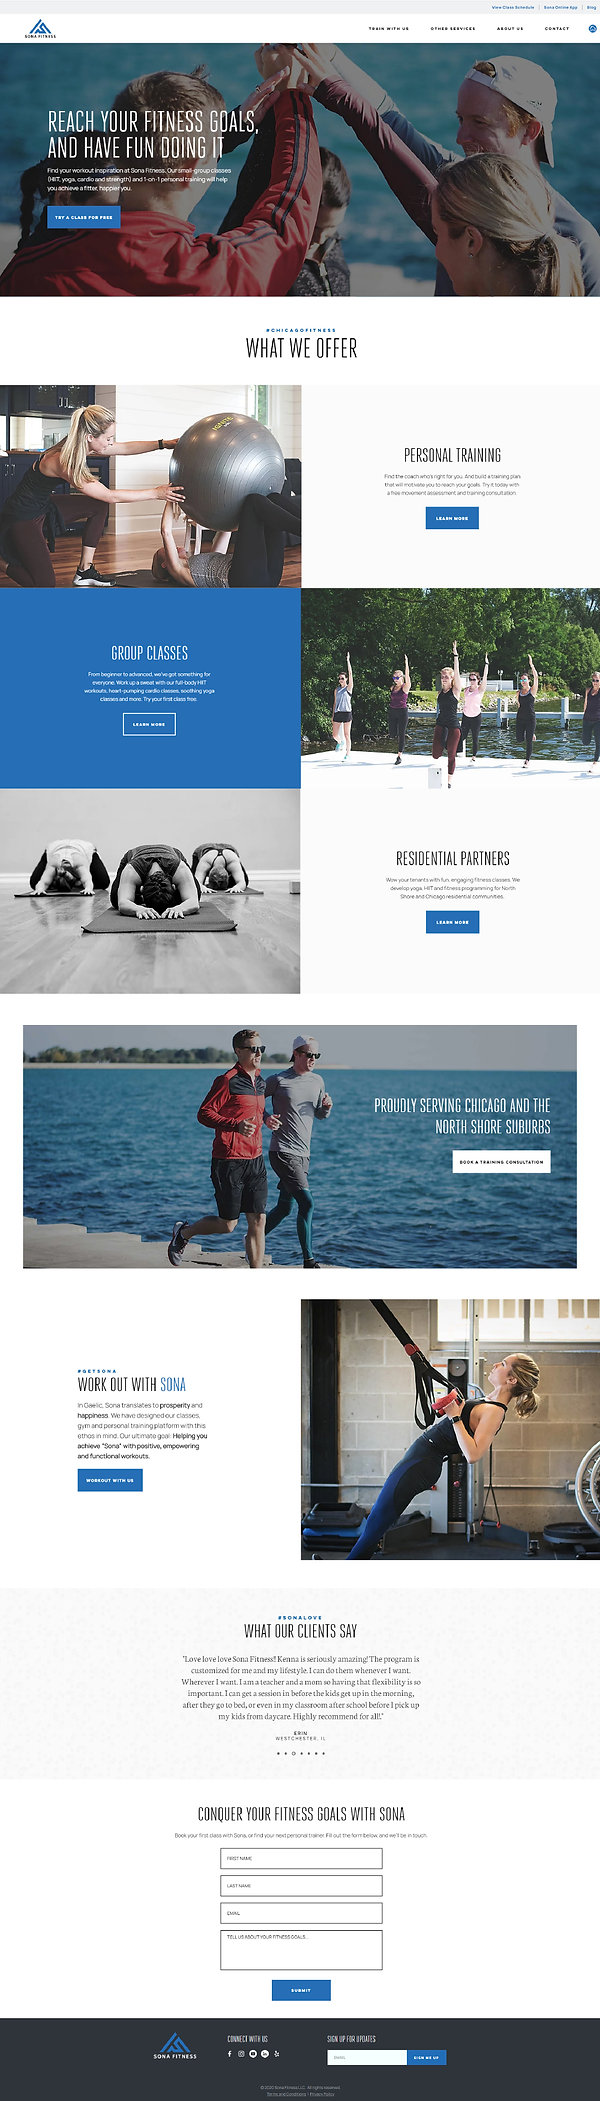 Home page of a Wix website for Chicago gym and personal training, Sona Fitness, designed by Christy Evans